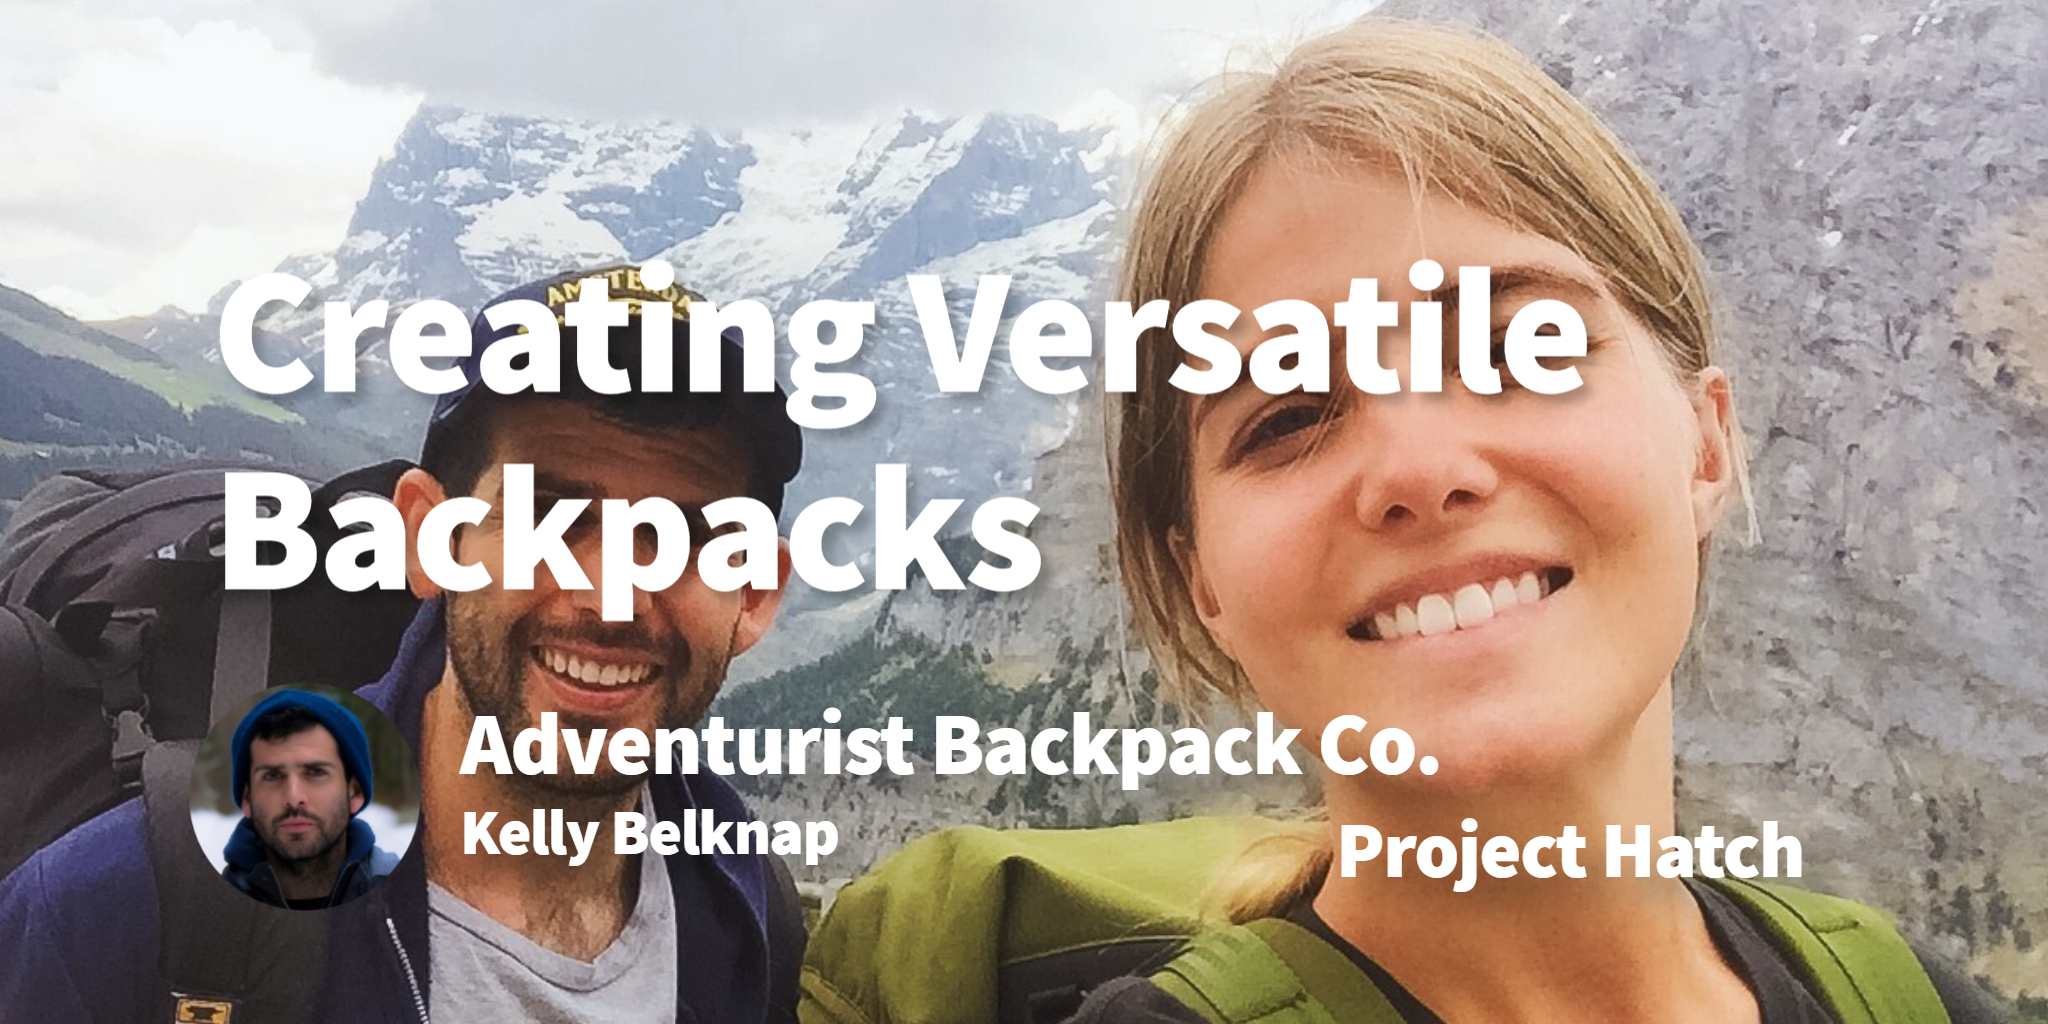 Adventurist Backpack Co. Kelly Belknap